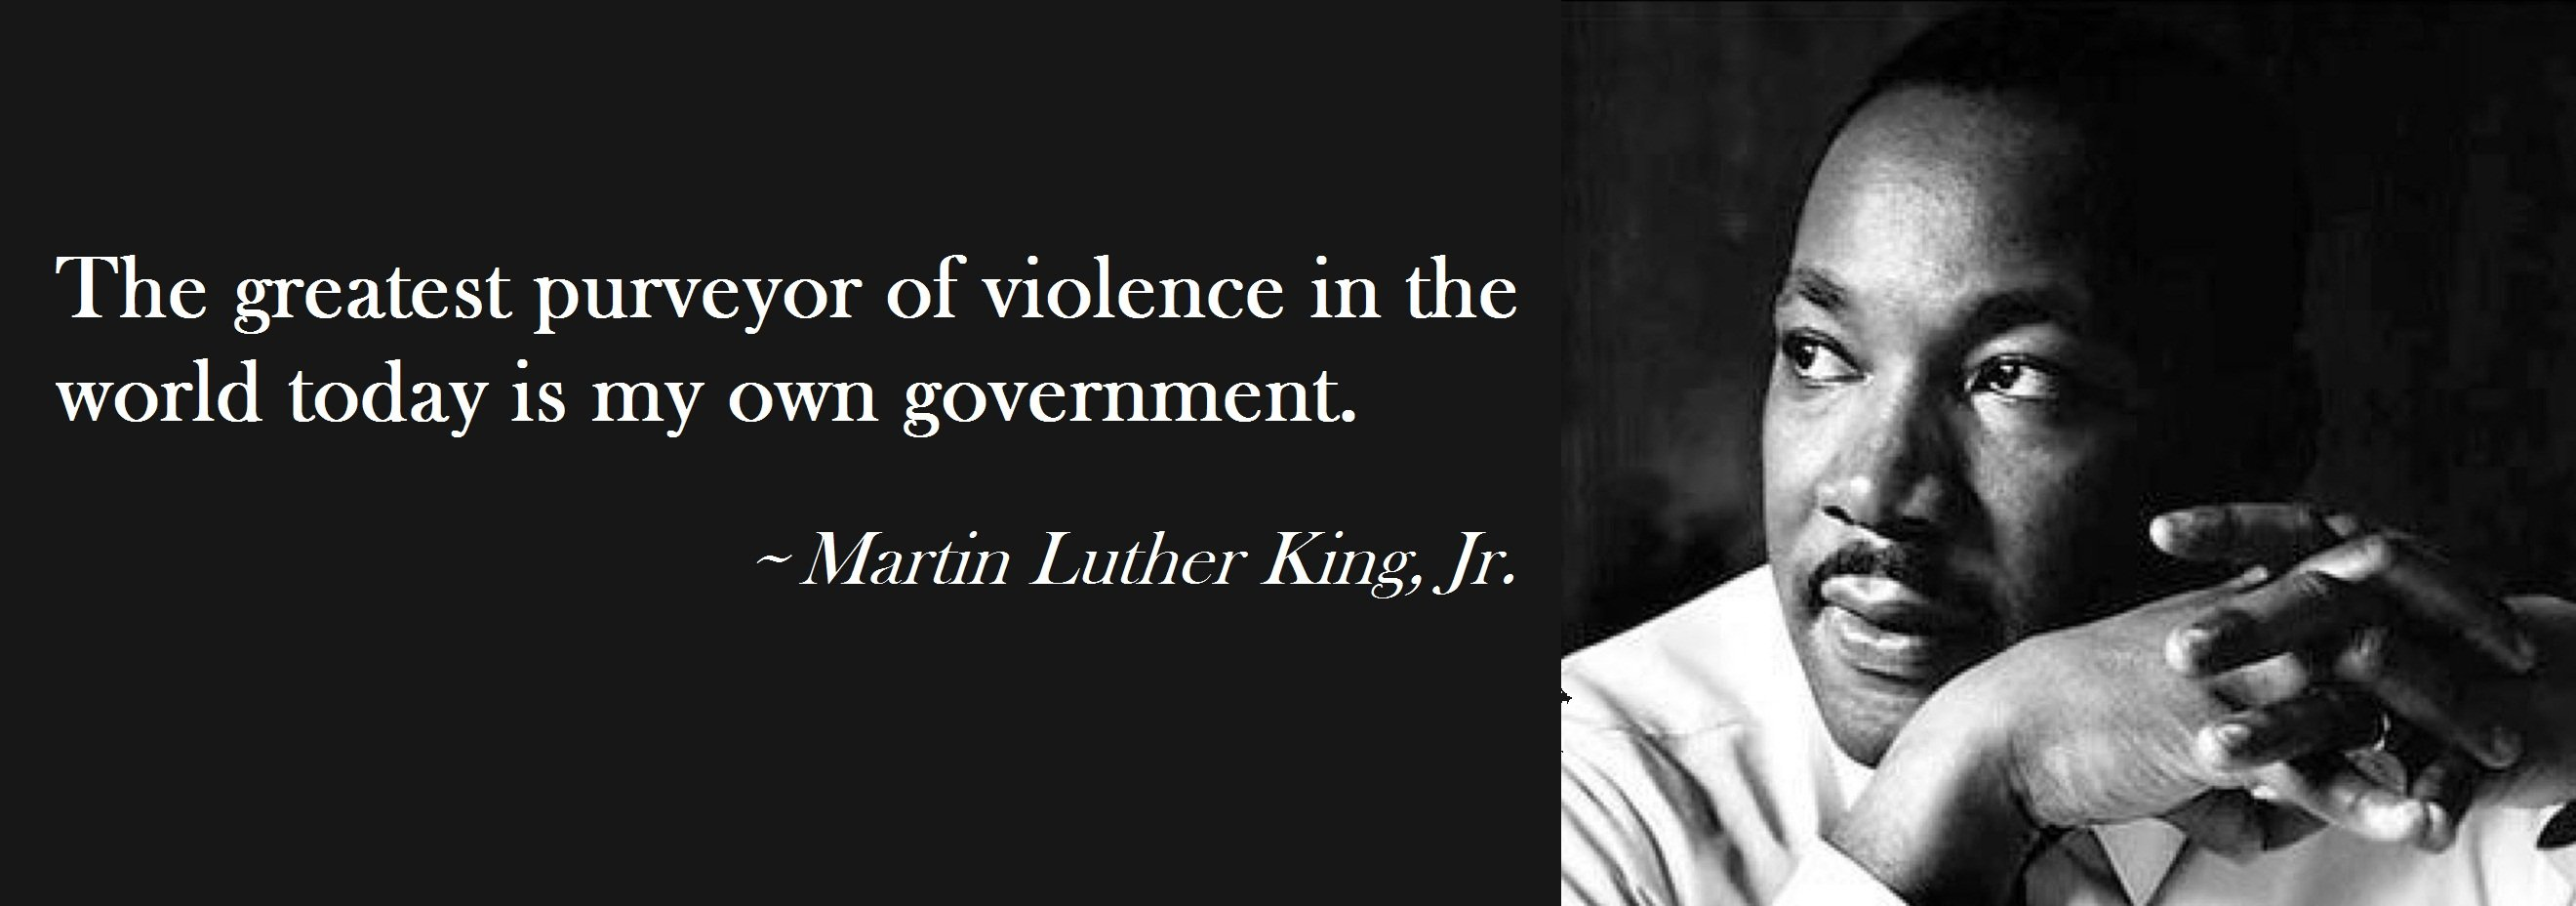 united states and martin luther king Maradmins maradmins keyword jr day is a federal holiday that is observed on the third monday of january the dr martin luther king led multiple nonviolent movements in the late 1950's and 60s to achieve legal equality for african americans in the united states.